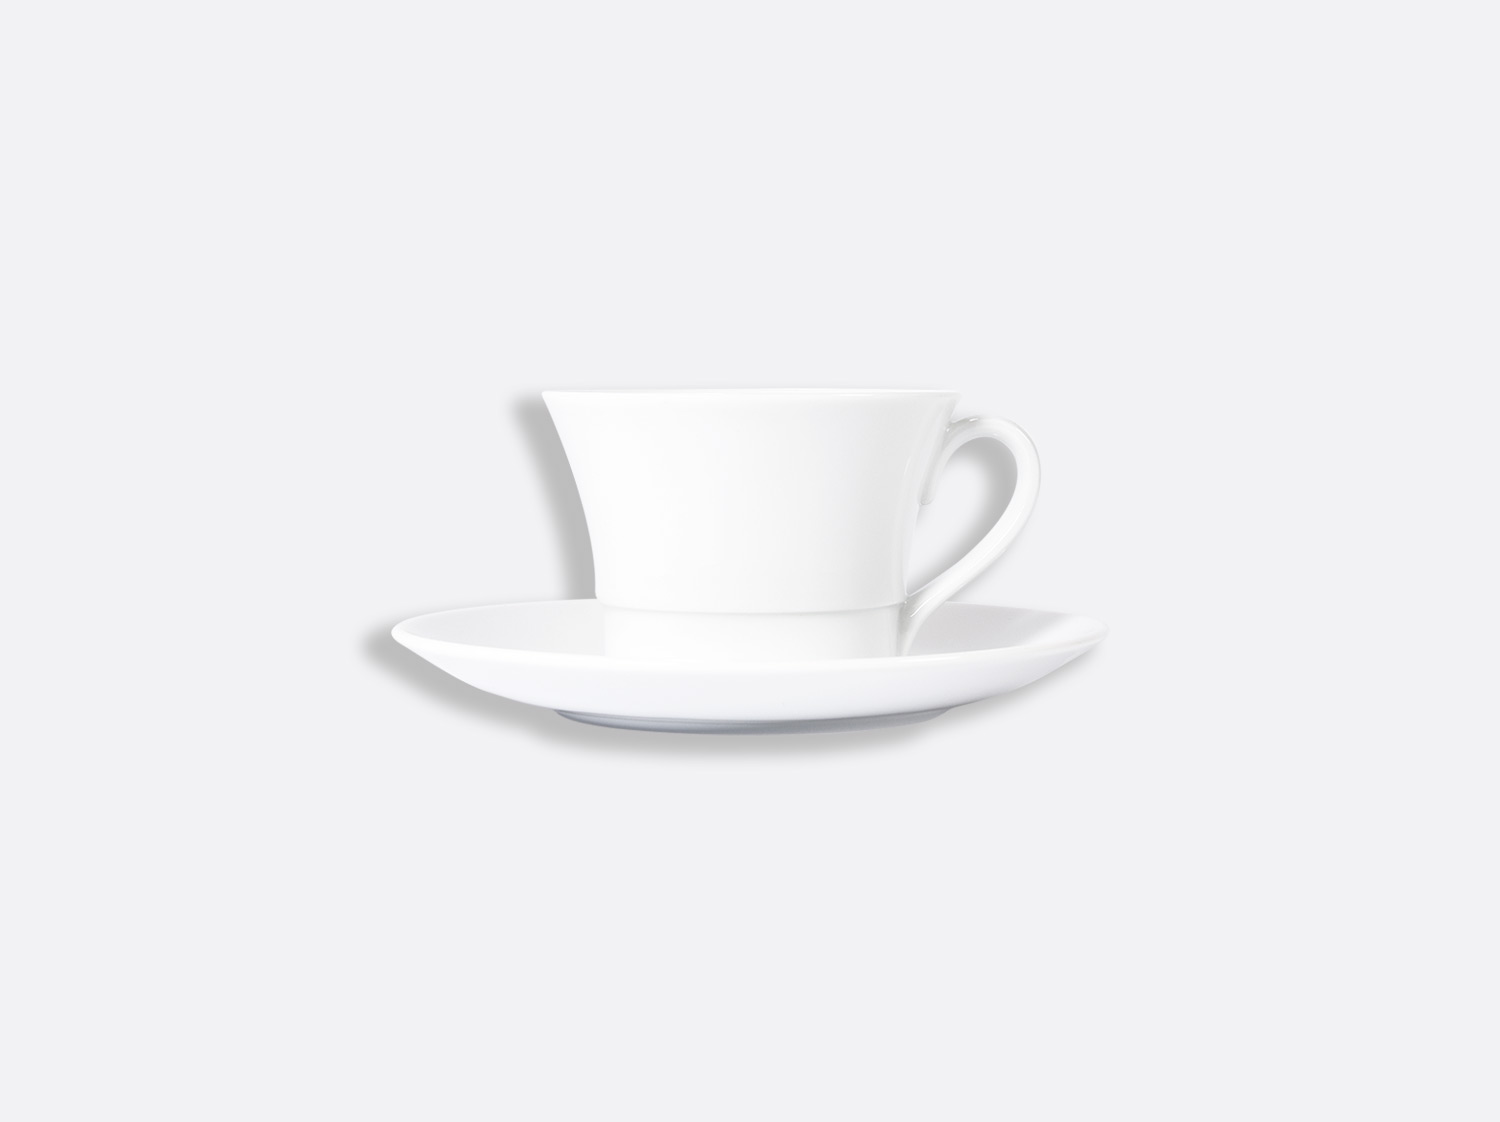 Tasse et soucoupe thé Shogun 20 cl en porcelaine de la collection FUSION BLANC Bernardaud